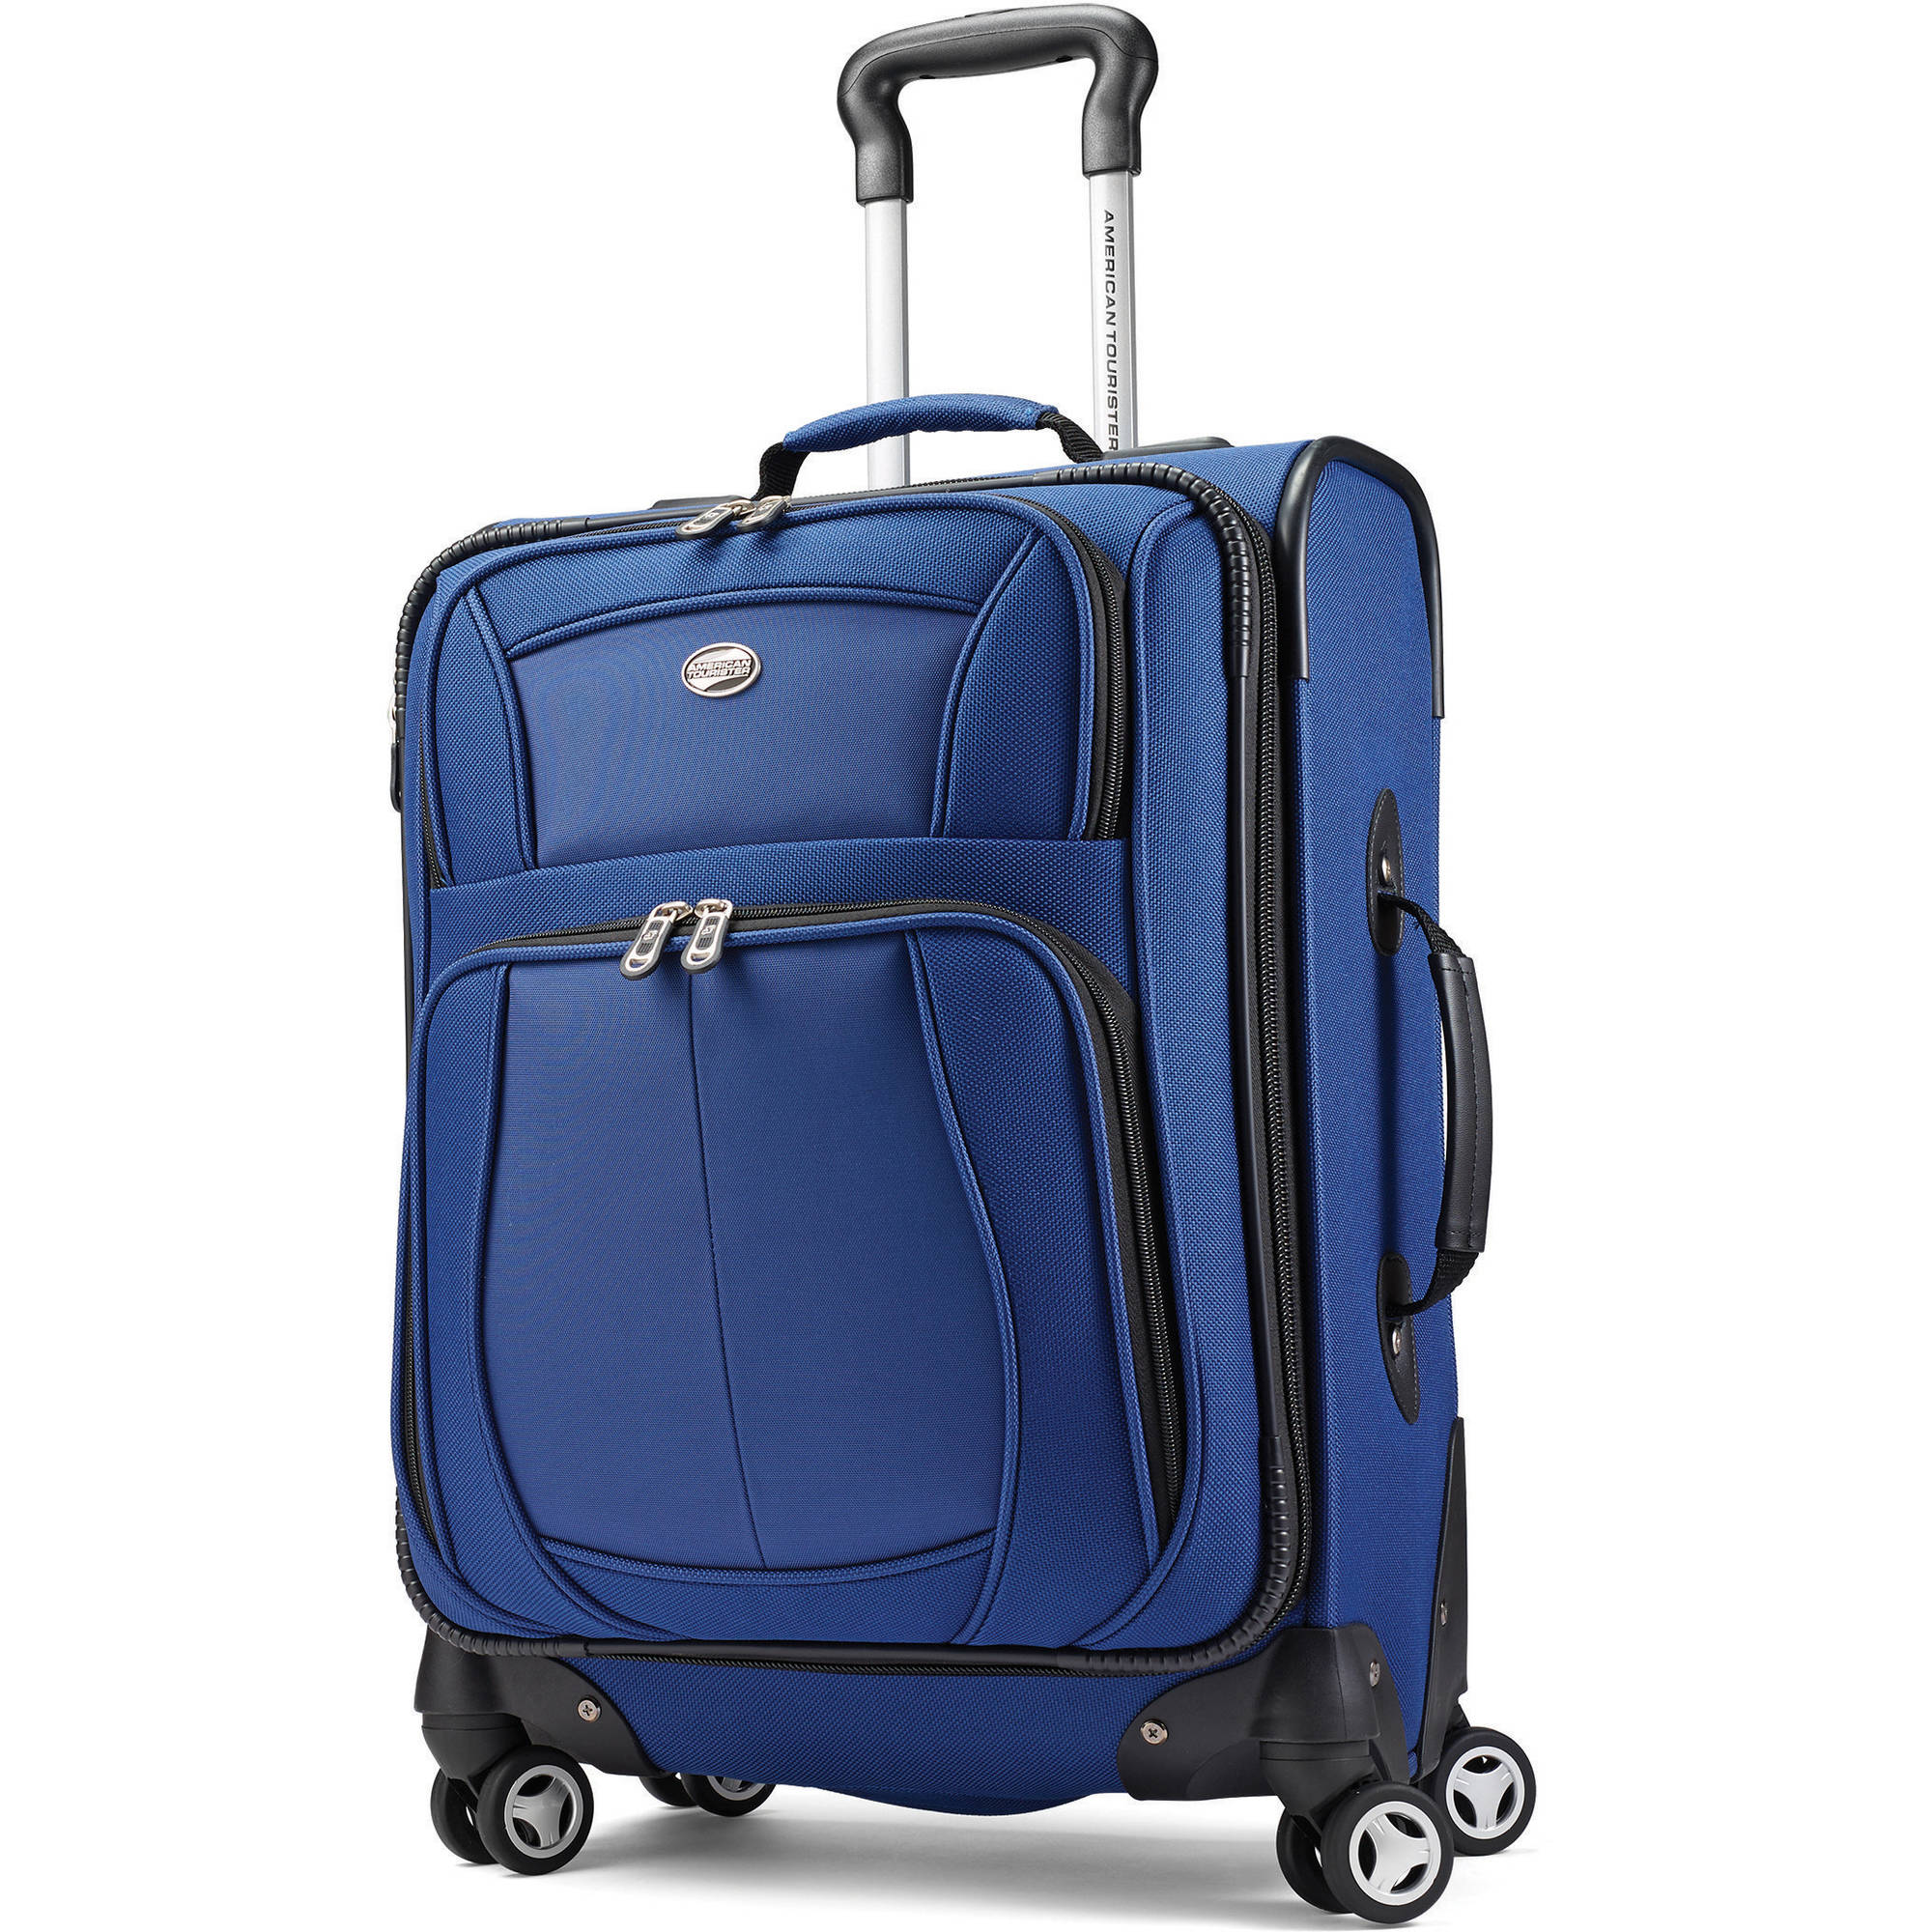 Travelers Choice Rome 28 in. Hardshell Upright Spinner Luggage ...